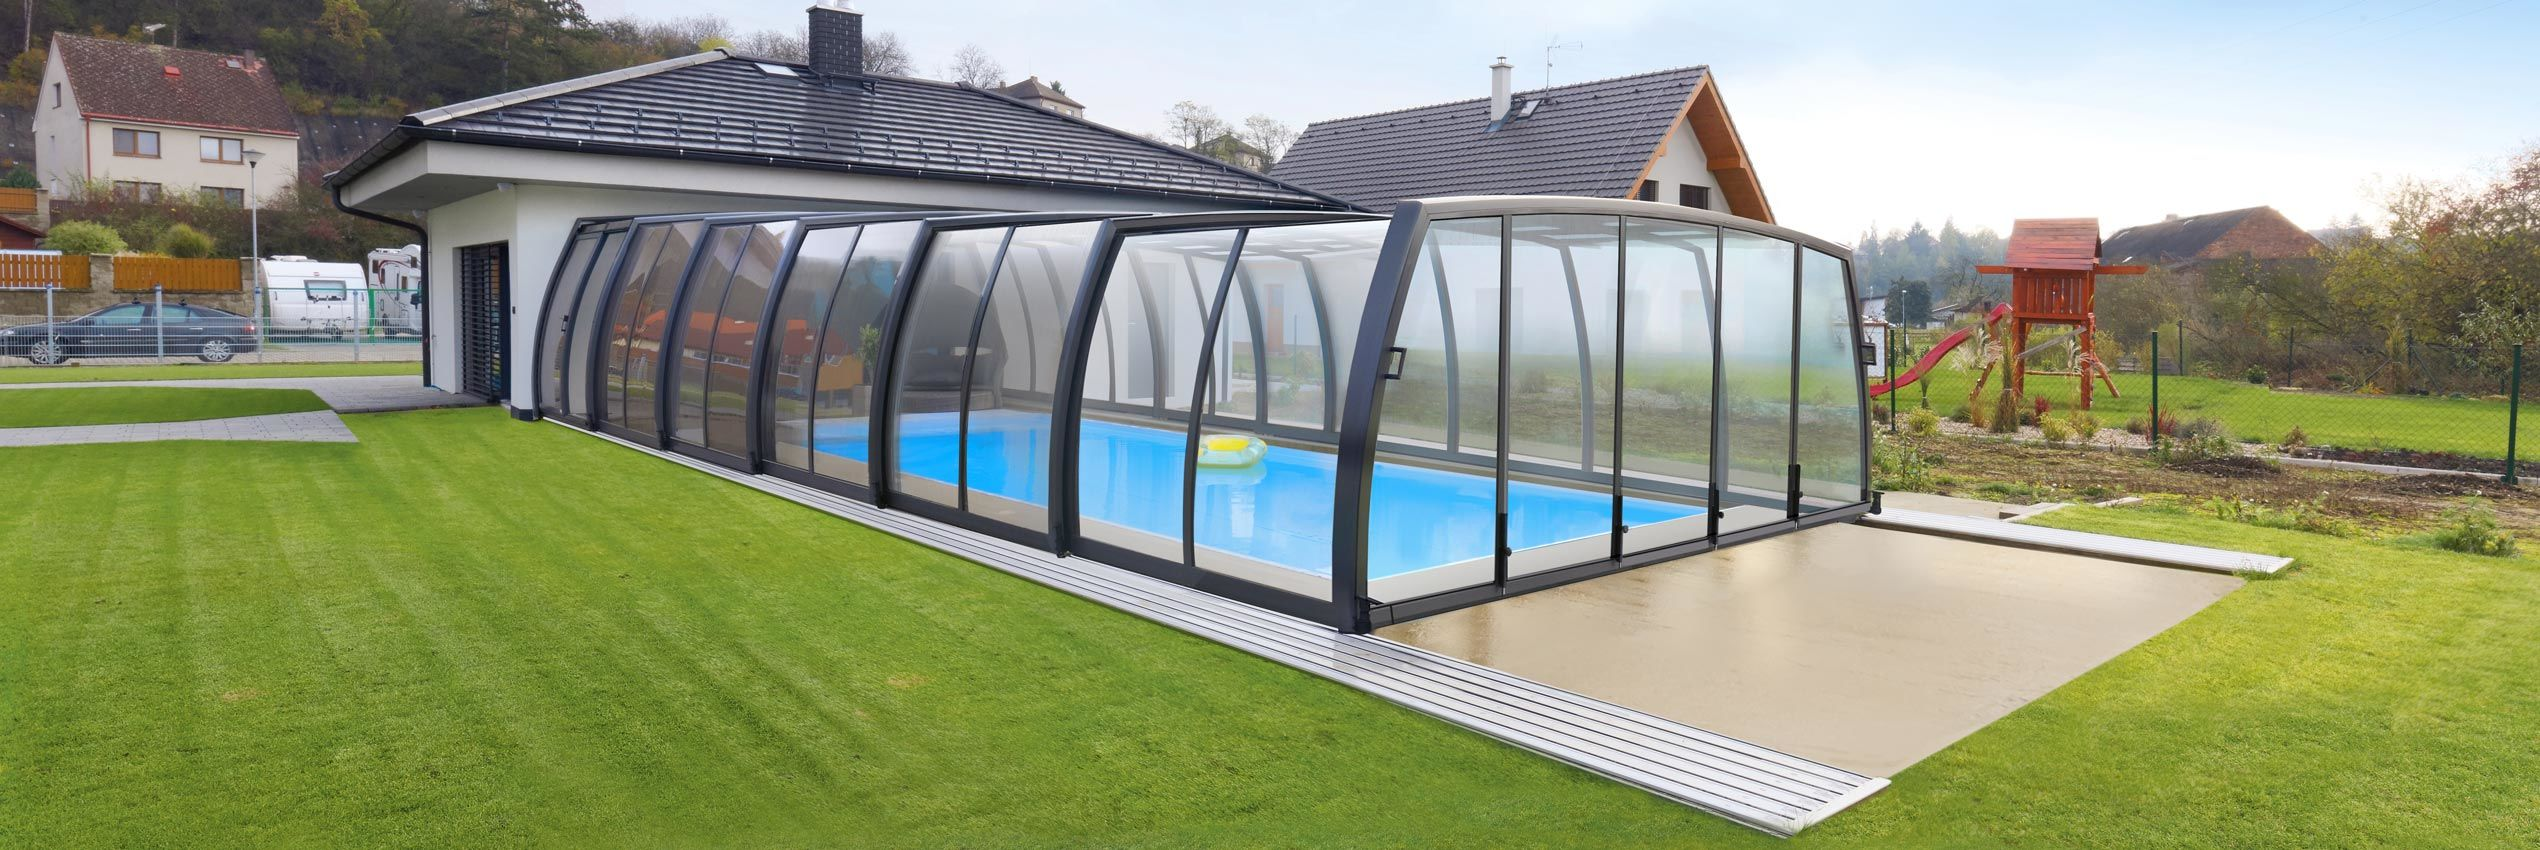 Fully closed retractable swimming pool enclosure Omega